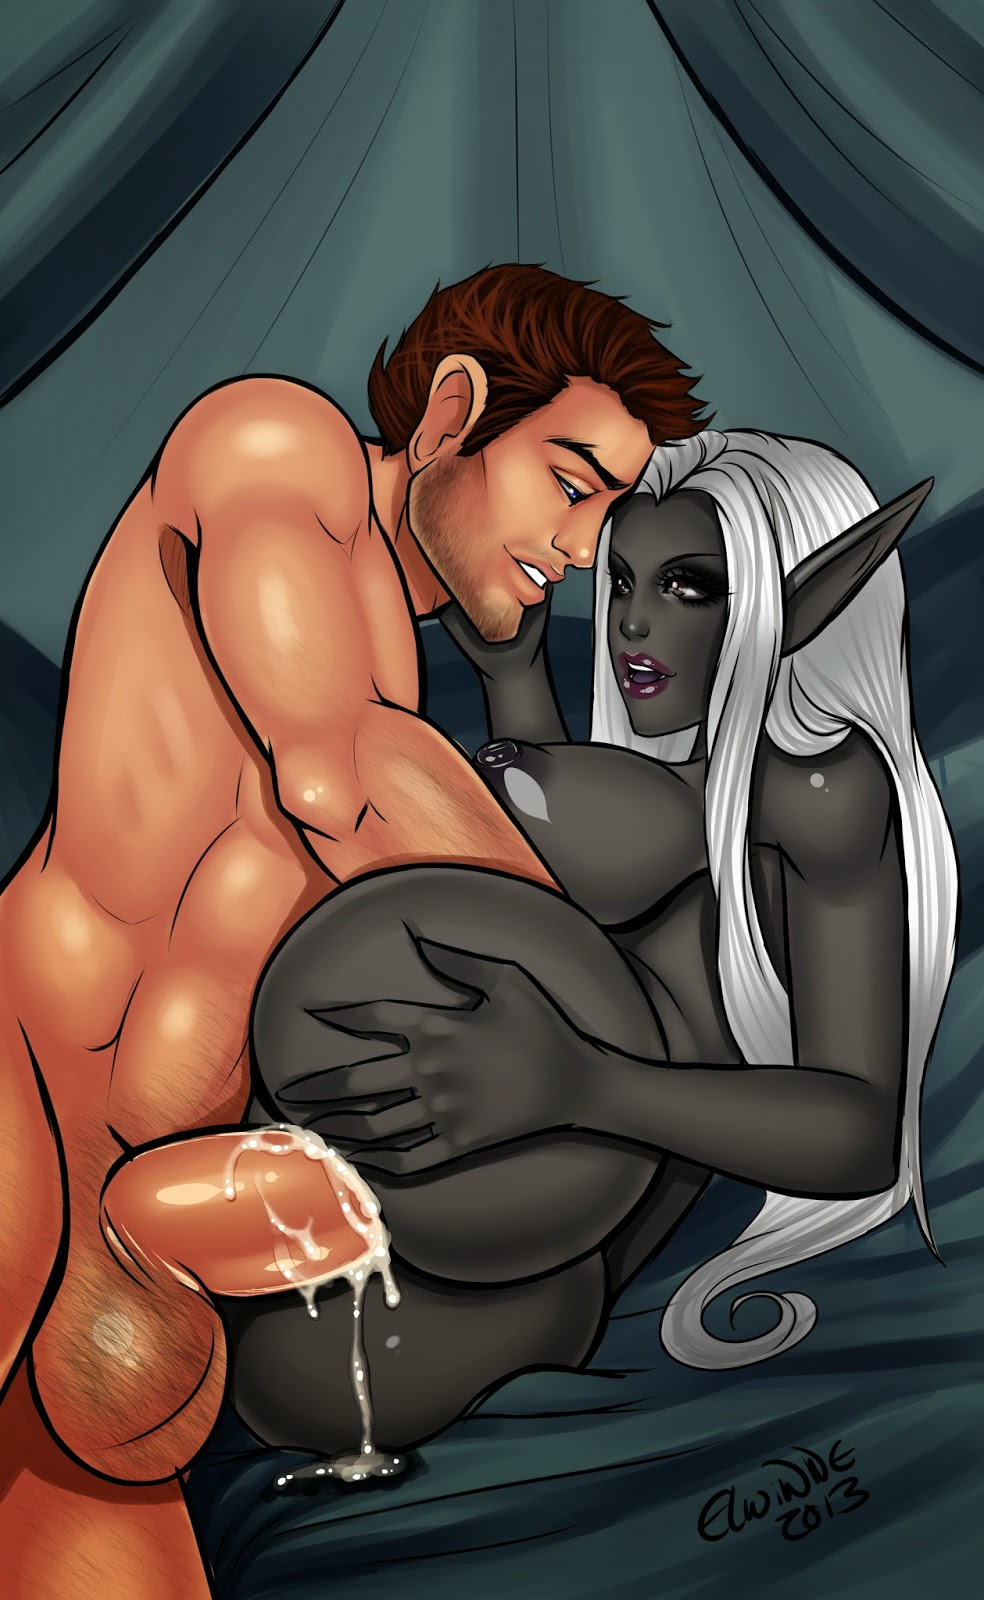 Cute dark elf porn videos softcore pics